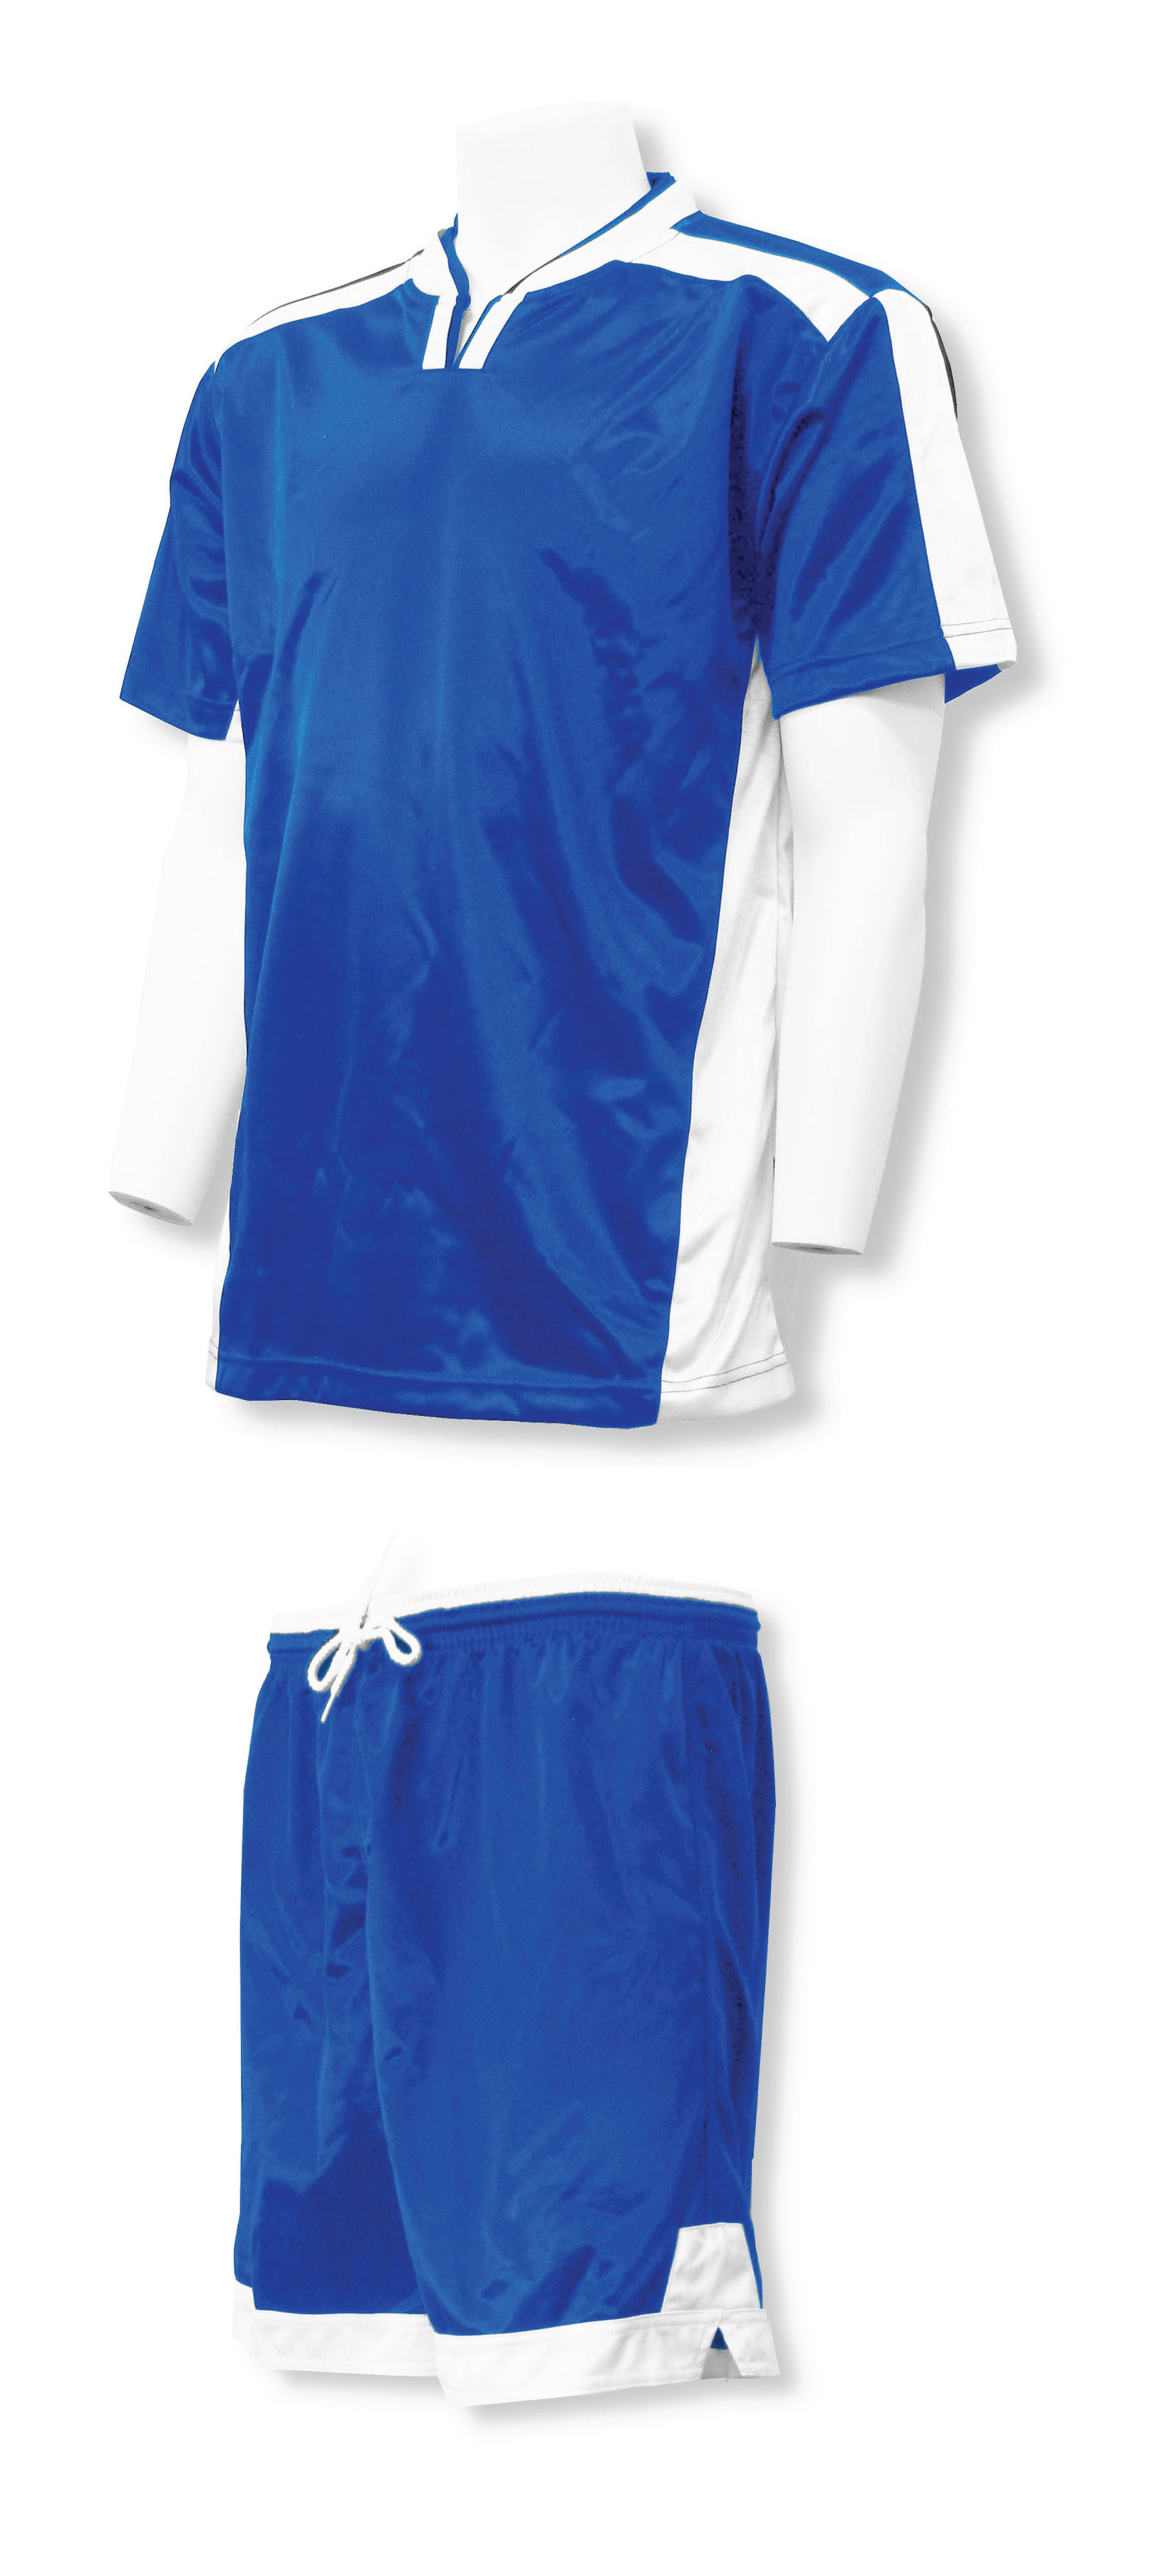 Winchester soccer jersey-short set in royal/white by Code Four Athletics